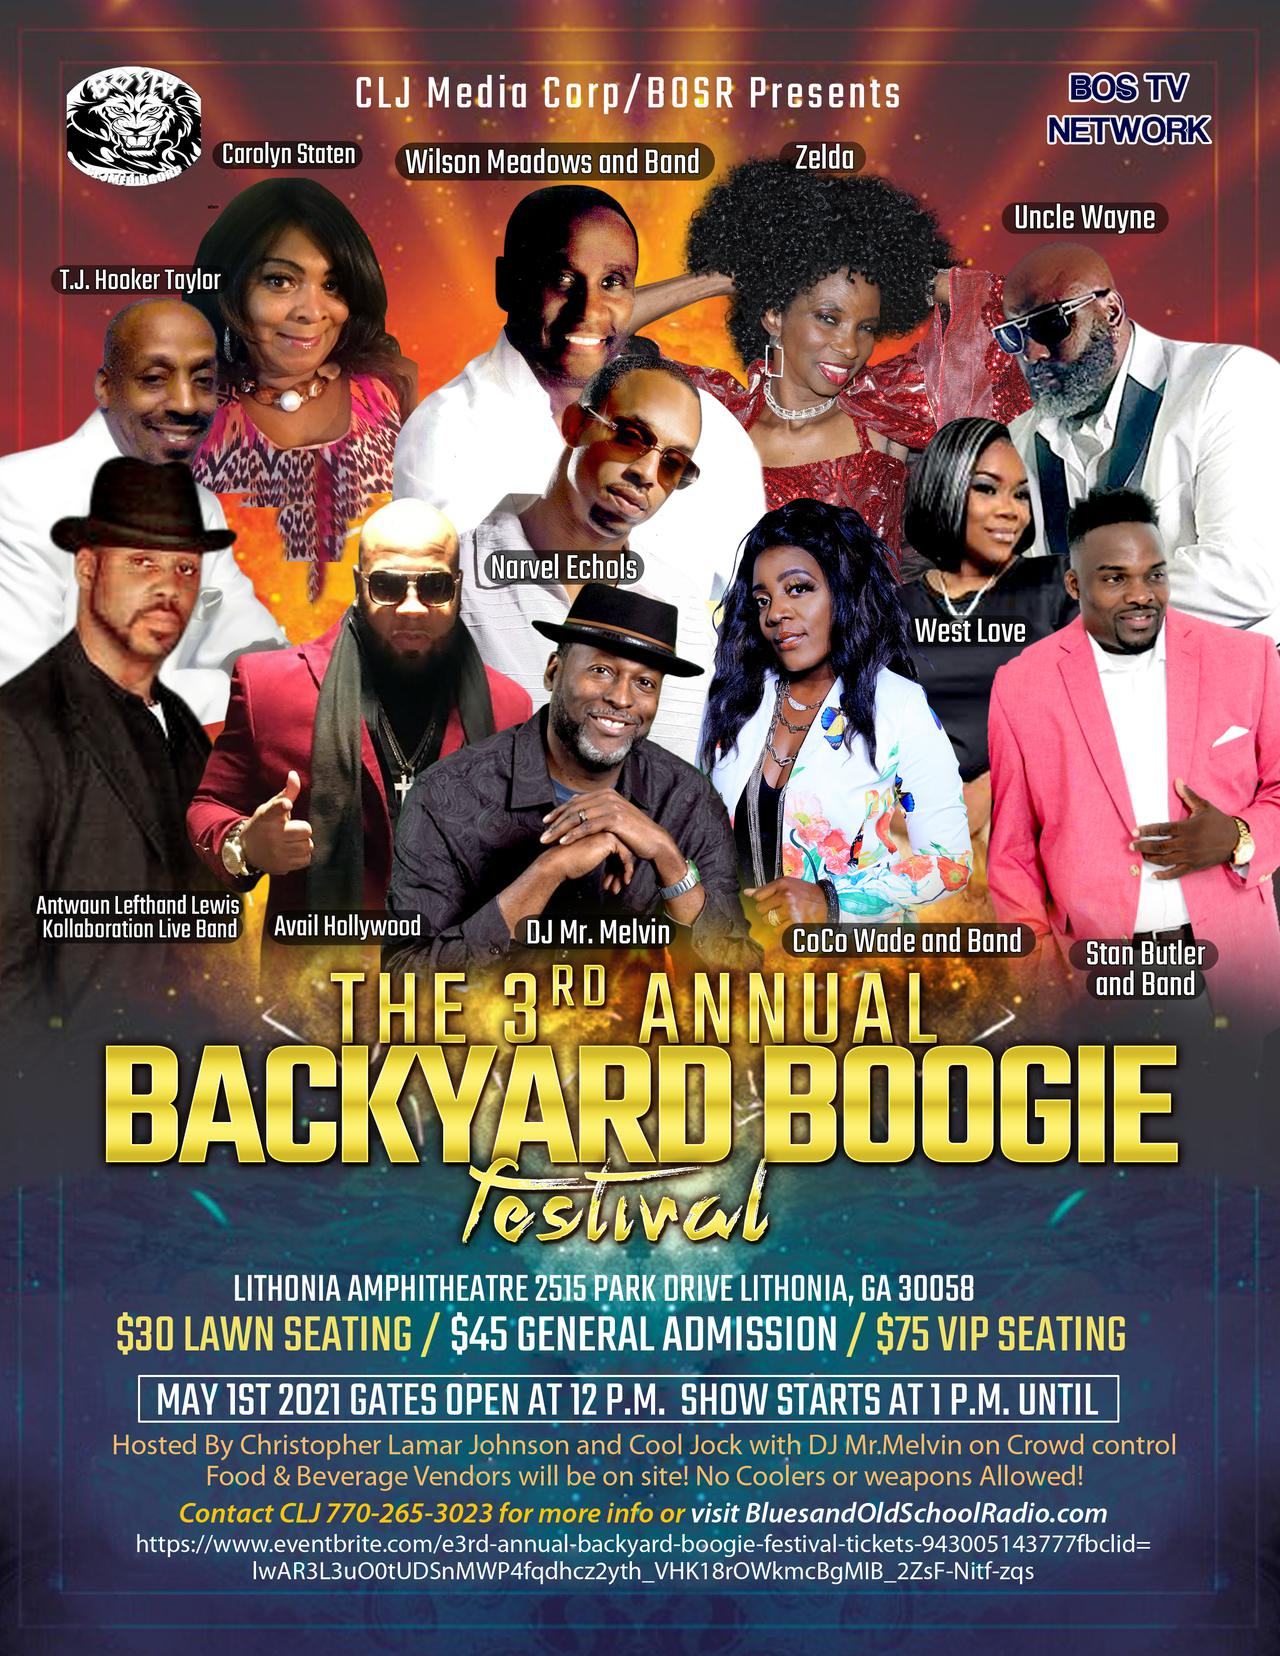 Official Backyard Boogie Festival 3rd Annual updated promo image (1)